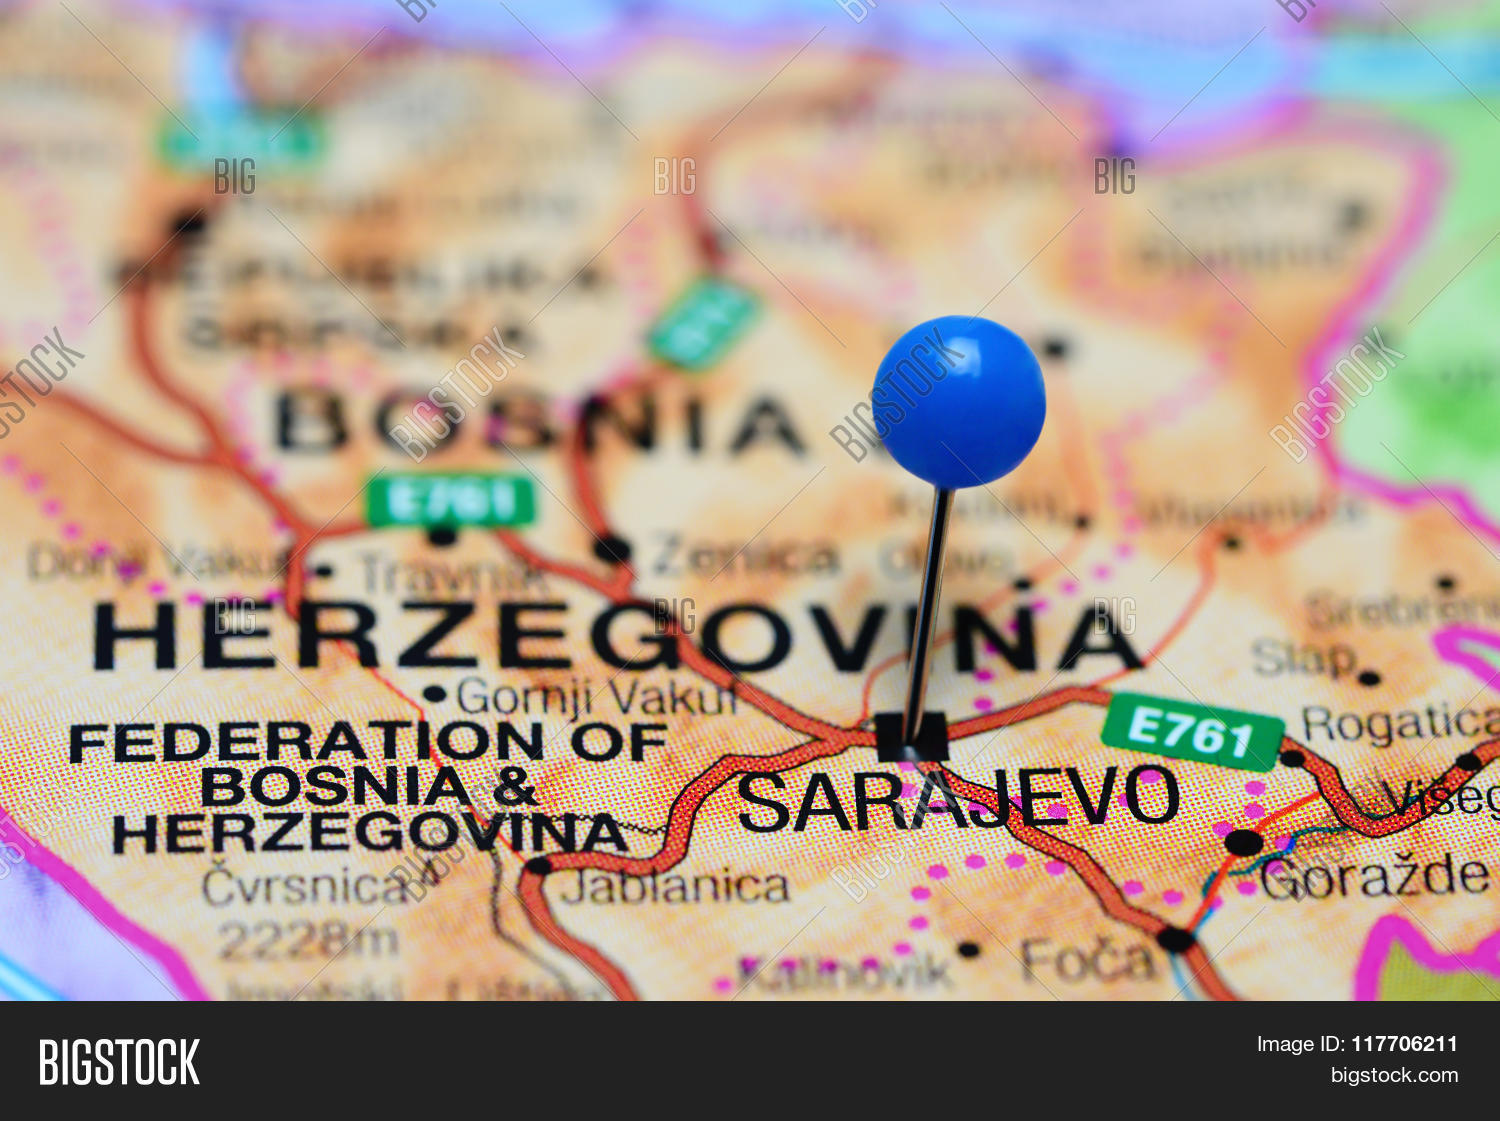 Sarajevo Pinned On Map Image & Photo (Free Trial) | Bigstock on vienna on map, serbia on map, skopje on map, belgrade on map, belfast on map, stockholm on map, budapest on map, warsaw on map, prague on map, tallinn on map, sofia on map, rome on map, dardanelles on map, western front on map, oslo on map, constantinople on map, zagreb on map, moscow on map, bosnia on map, london on map,